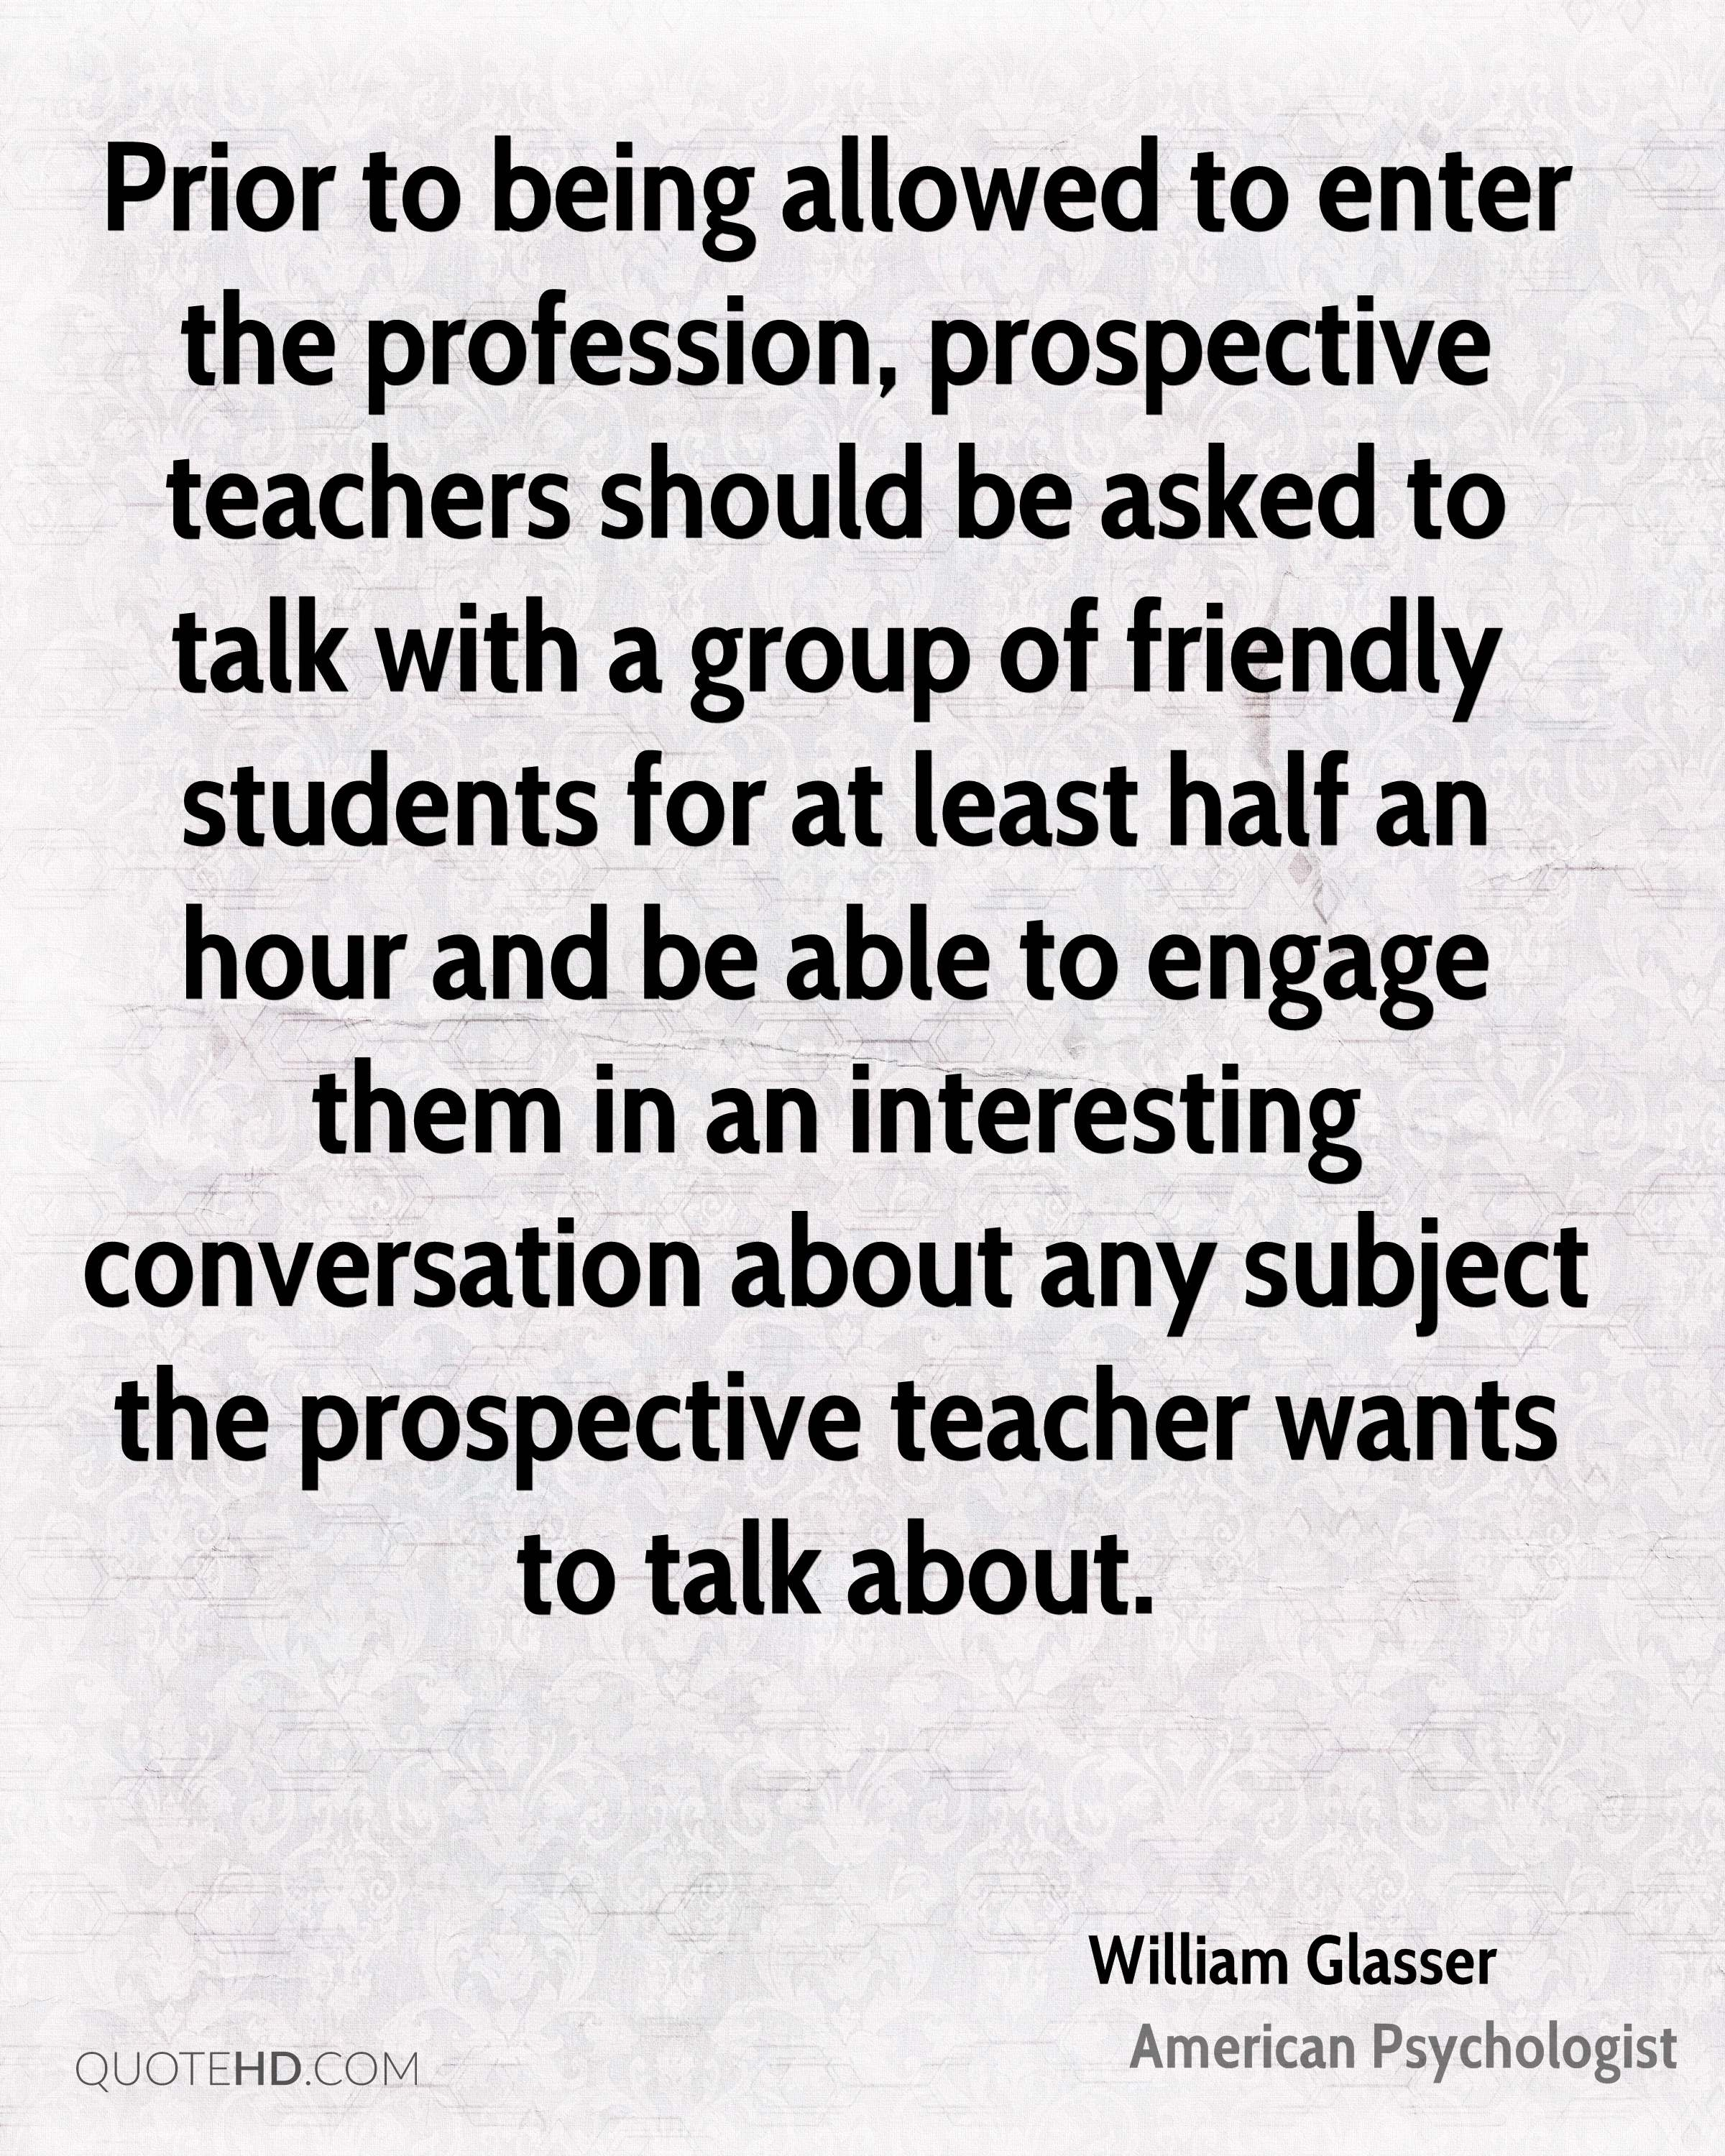 Prior to being allowed to enter the profession, prospective teachers should be asked to talk with a group of friendly students for at least half an hour and be able to engage them in an interesting conversation about any subject the prospective teacher wants to talk about.